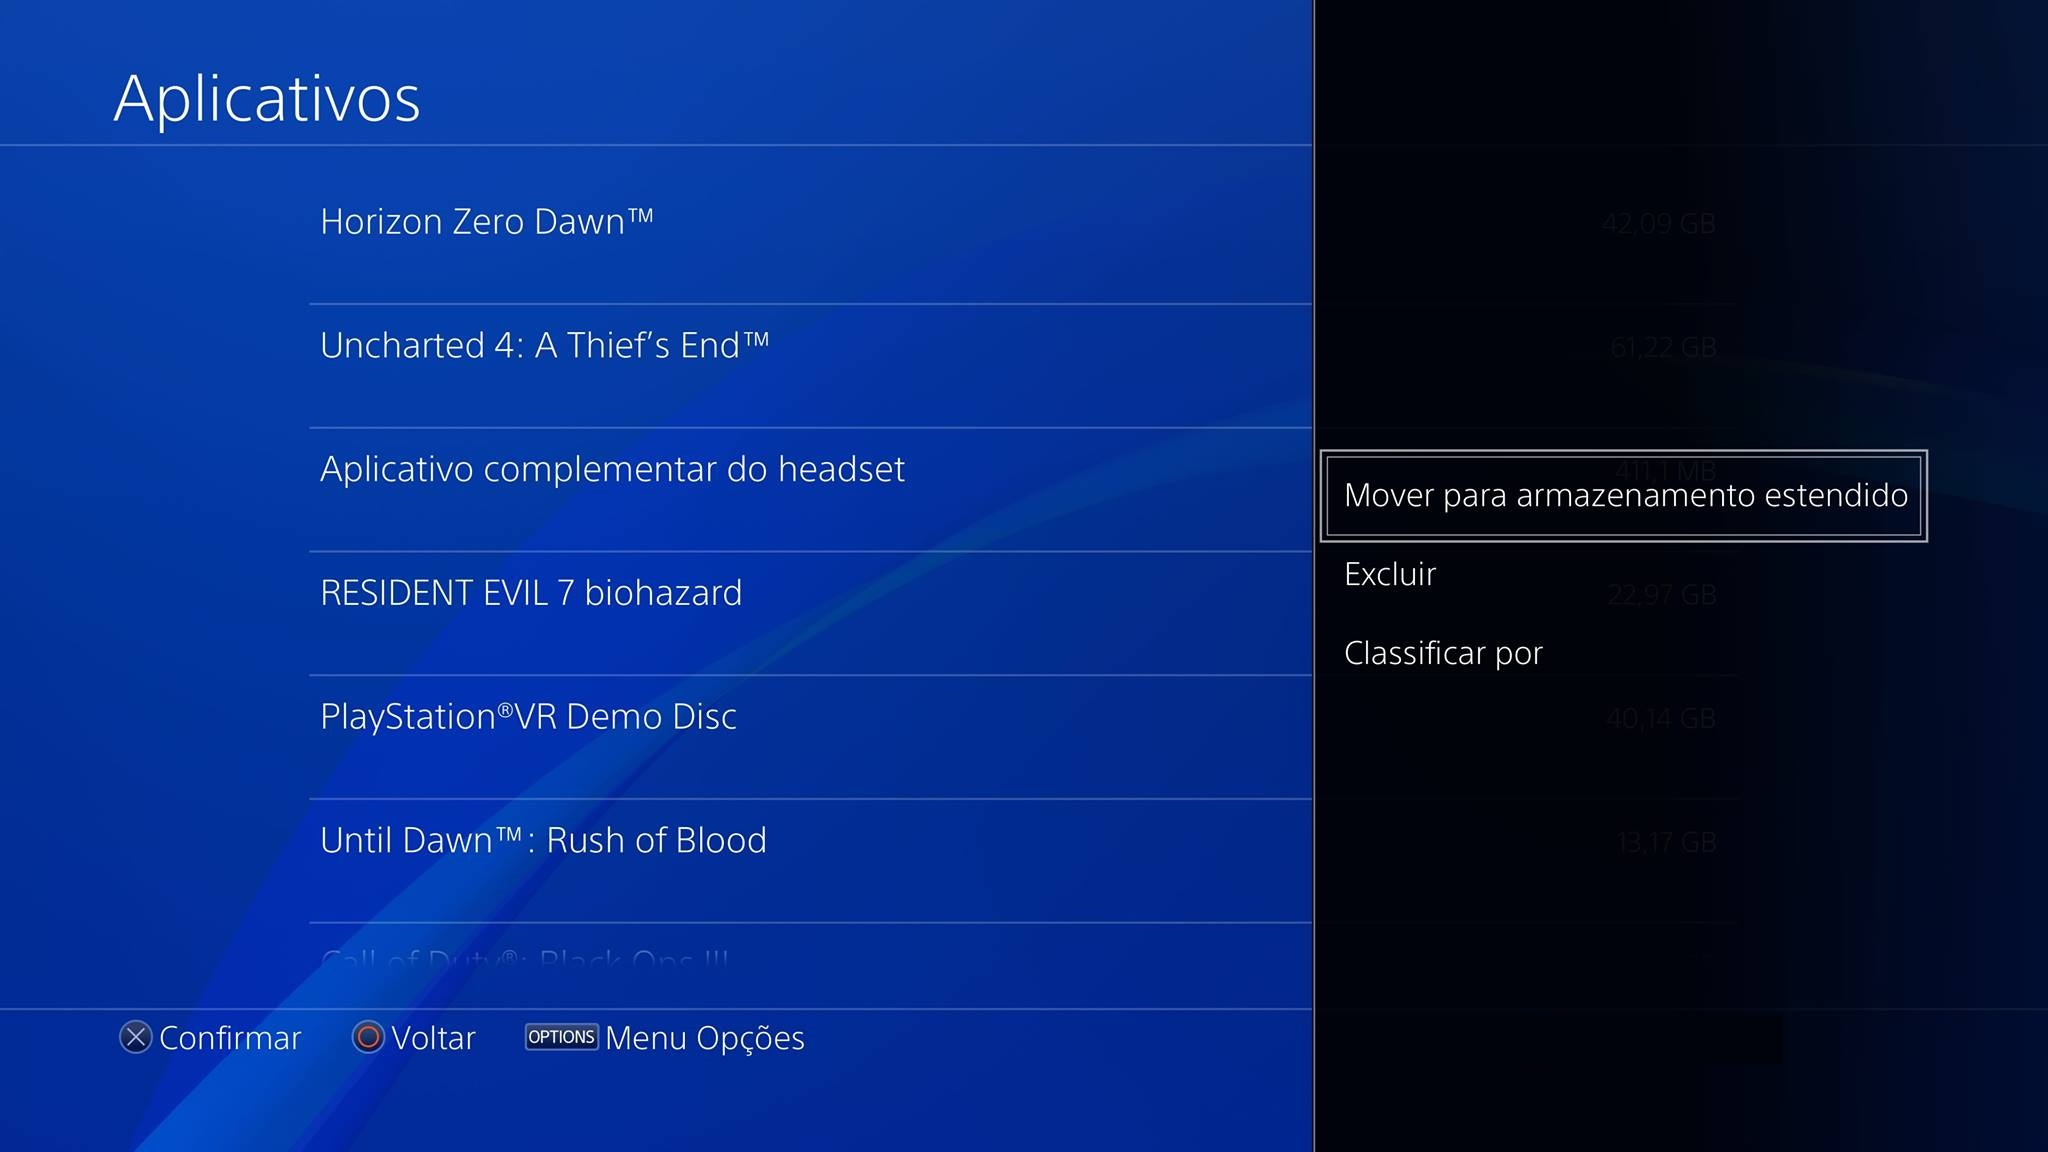 [Tutorial] Como configurar e usar HD externo no PlayStation 4 12